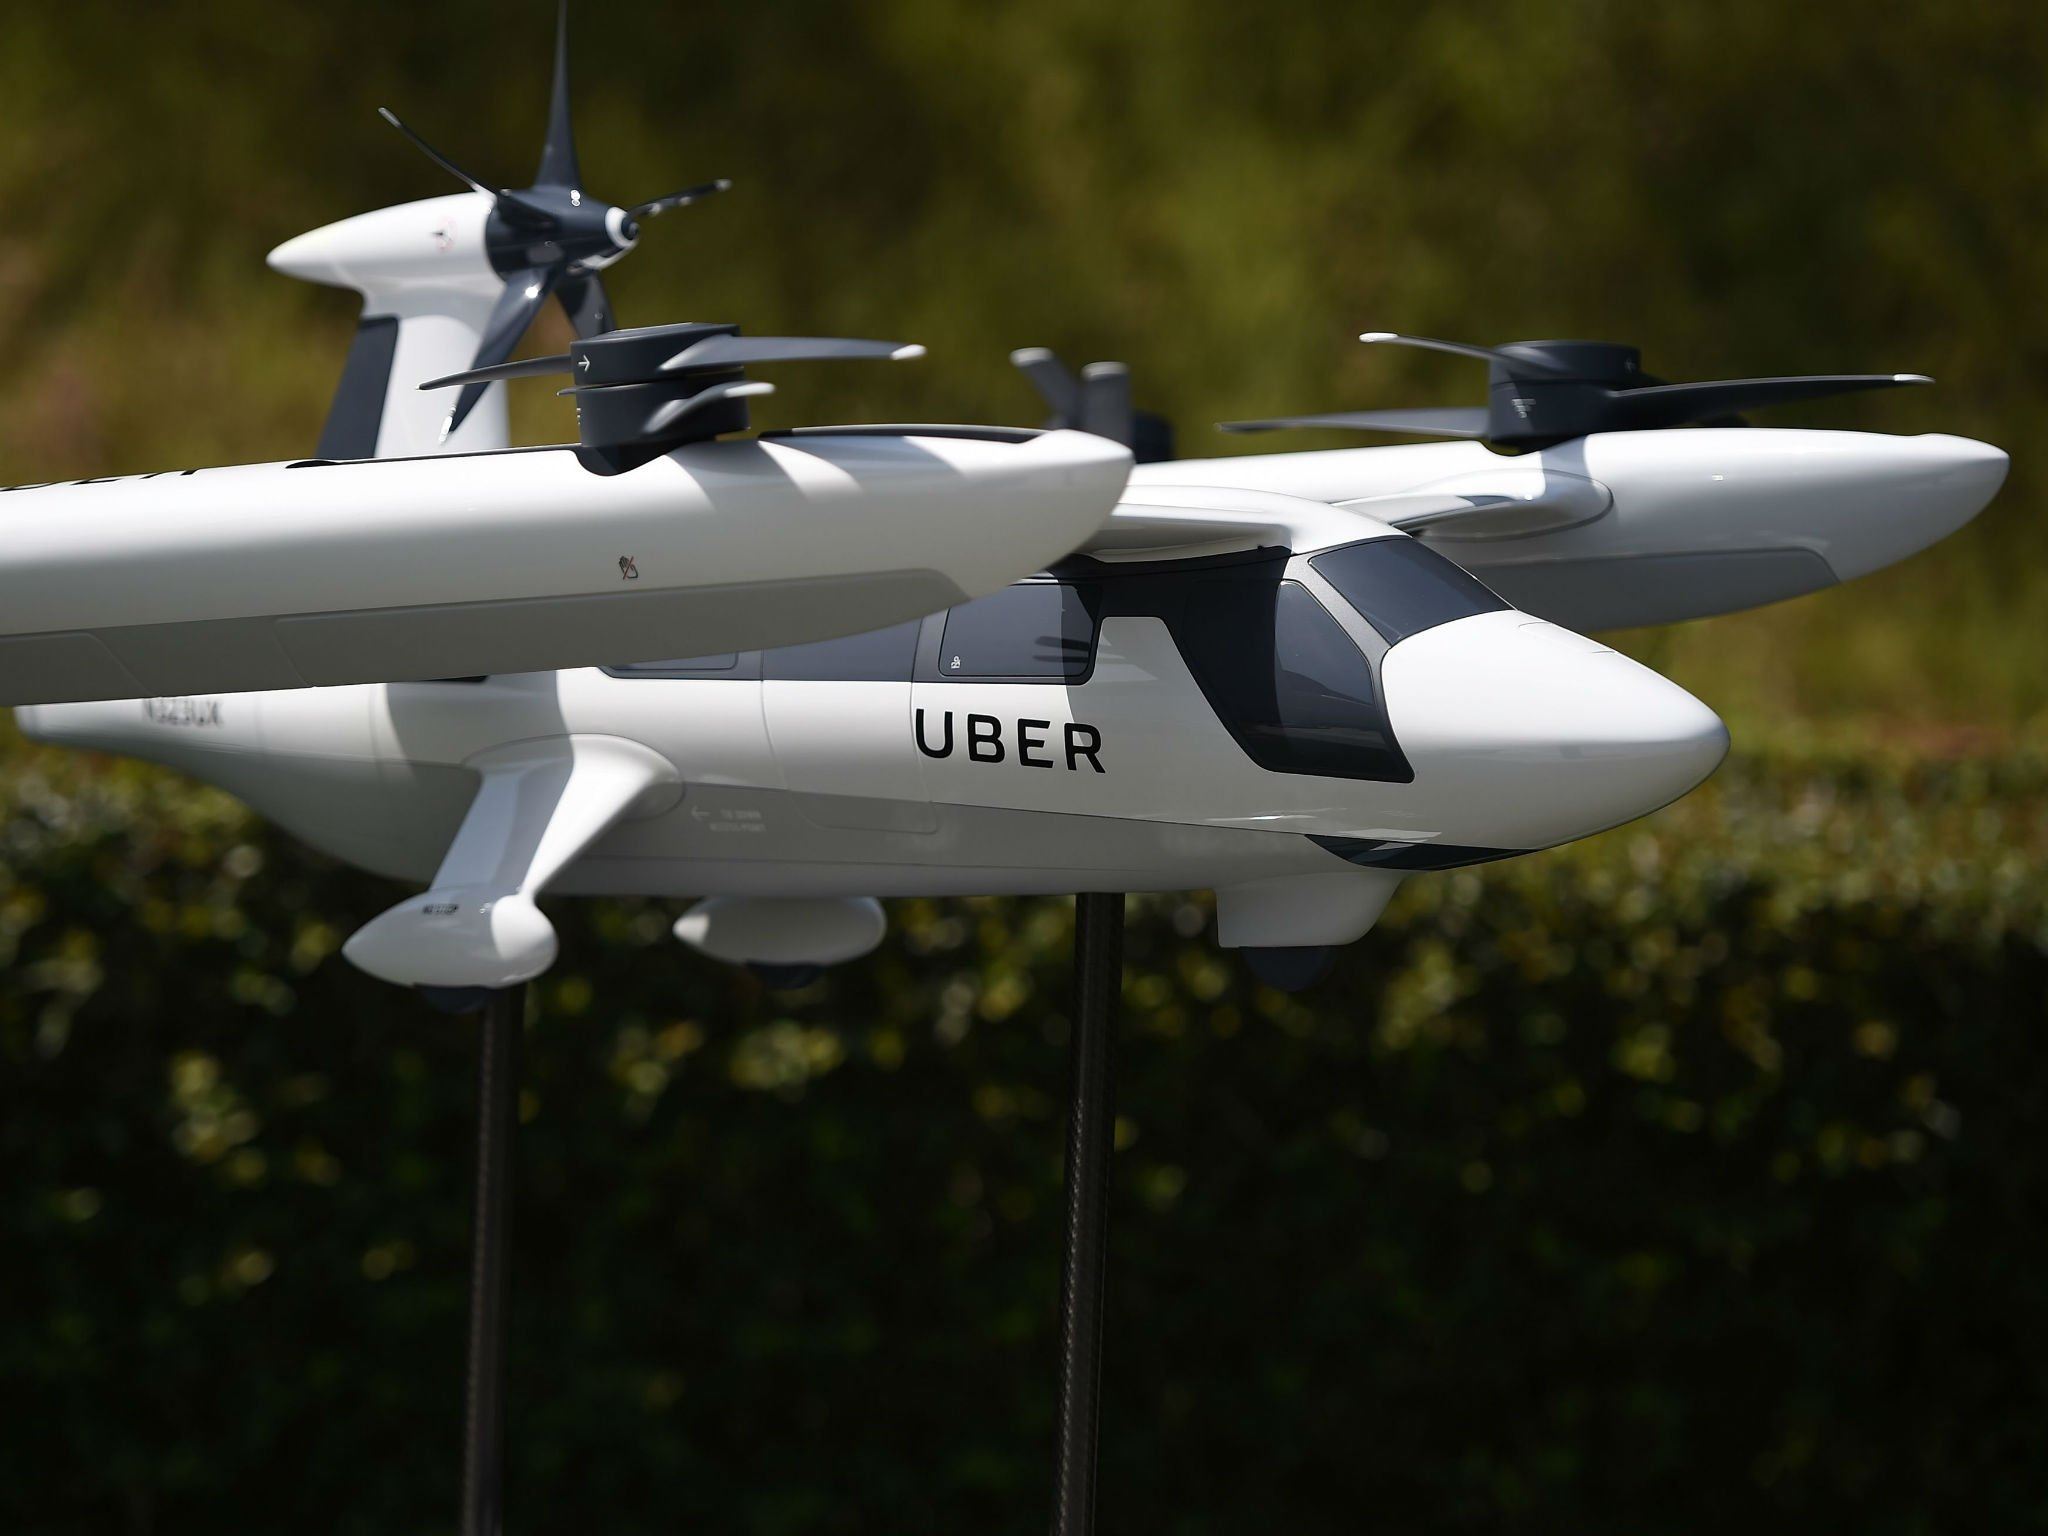 Uber Partners with US Army on Flying Car Technology